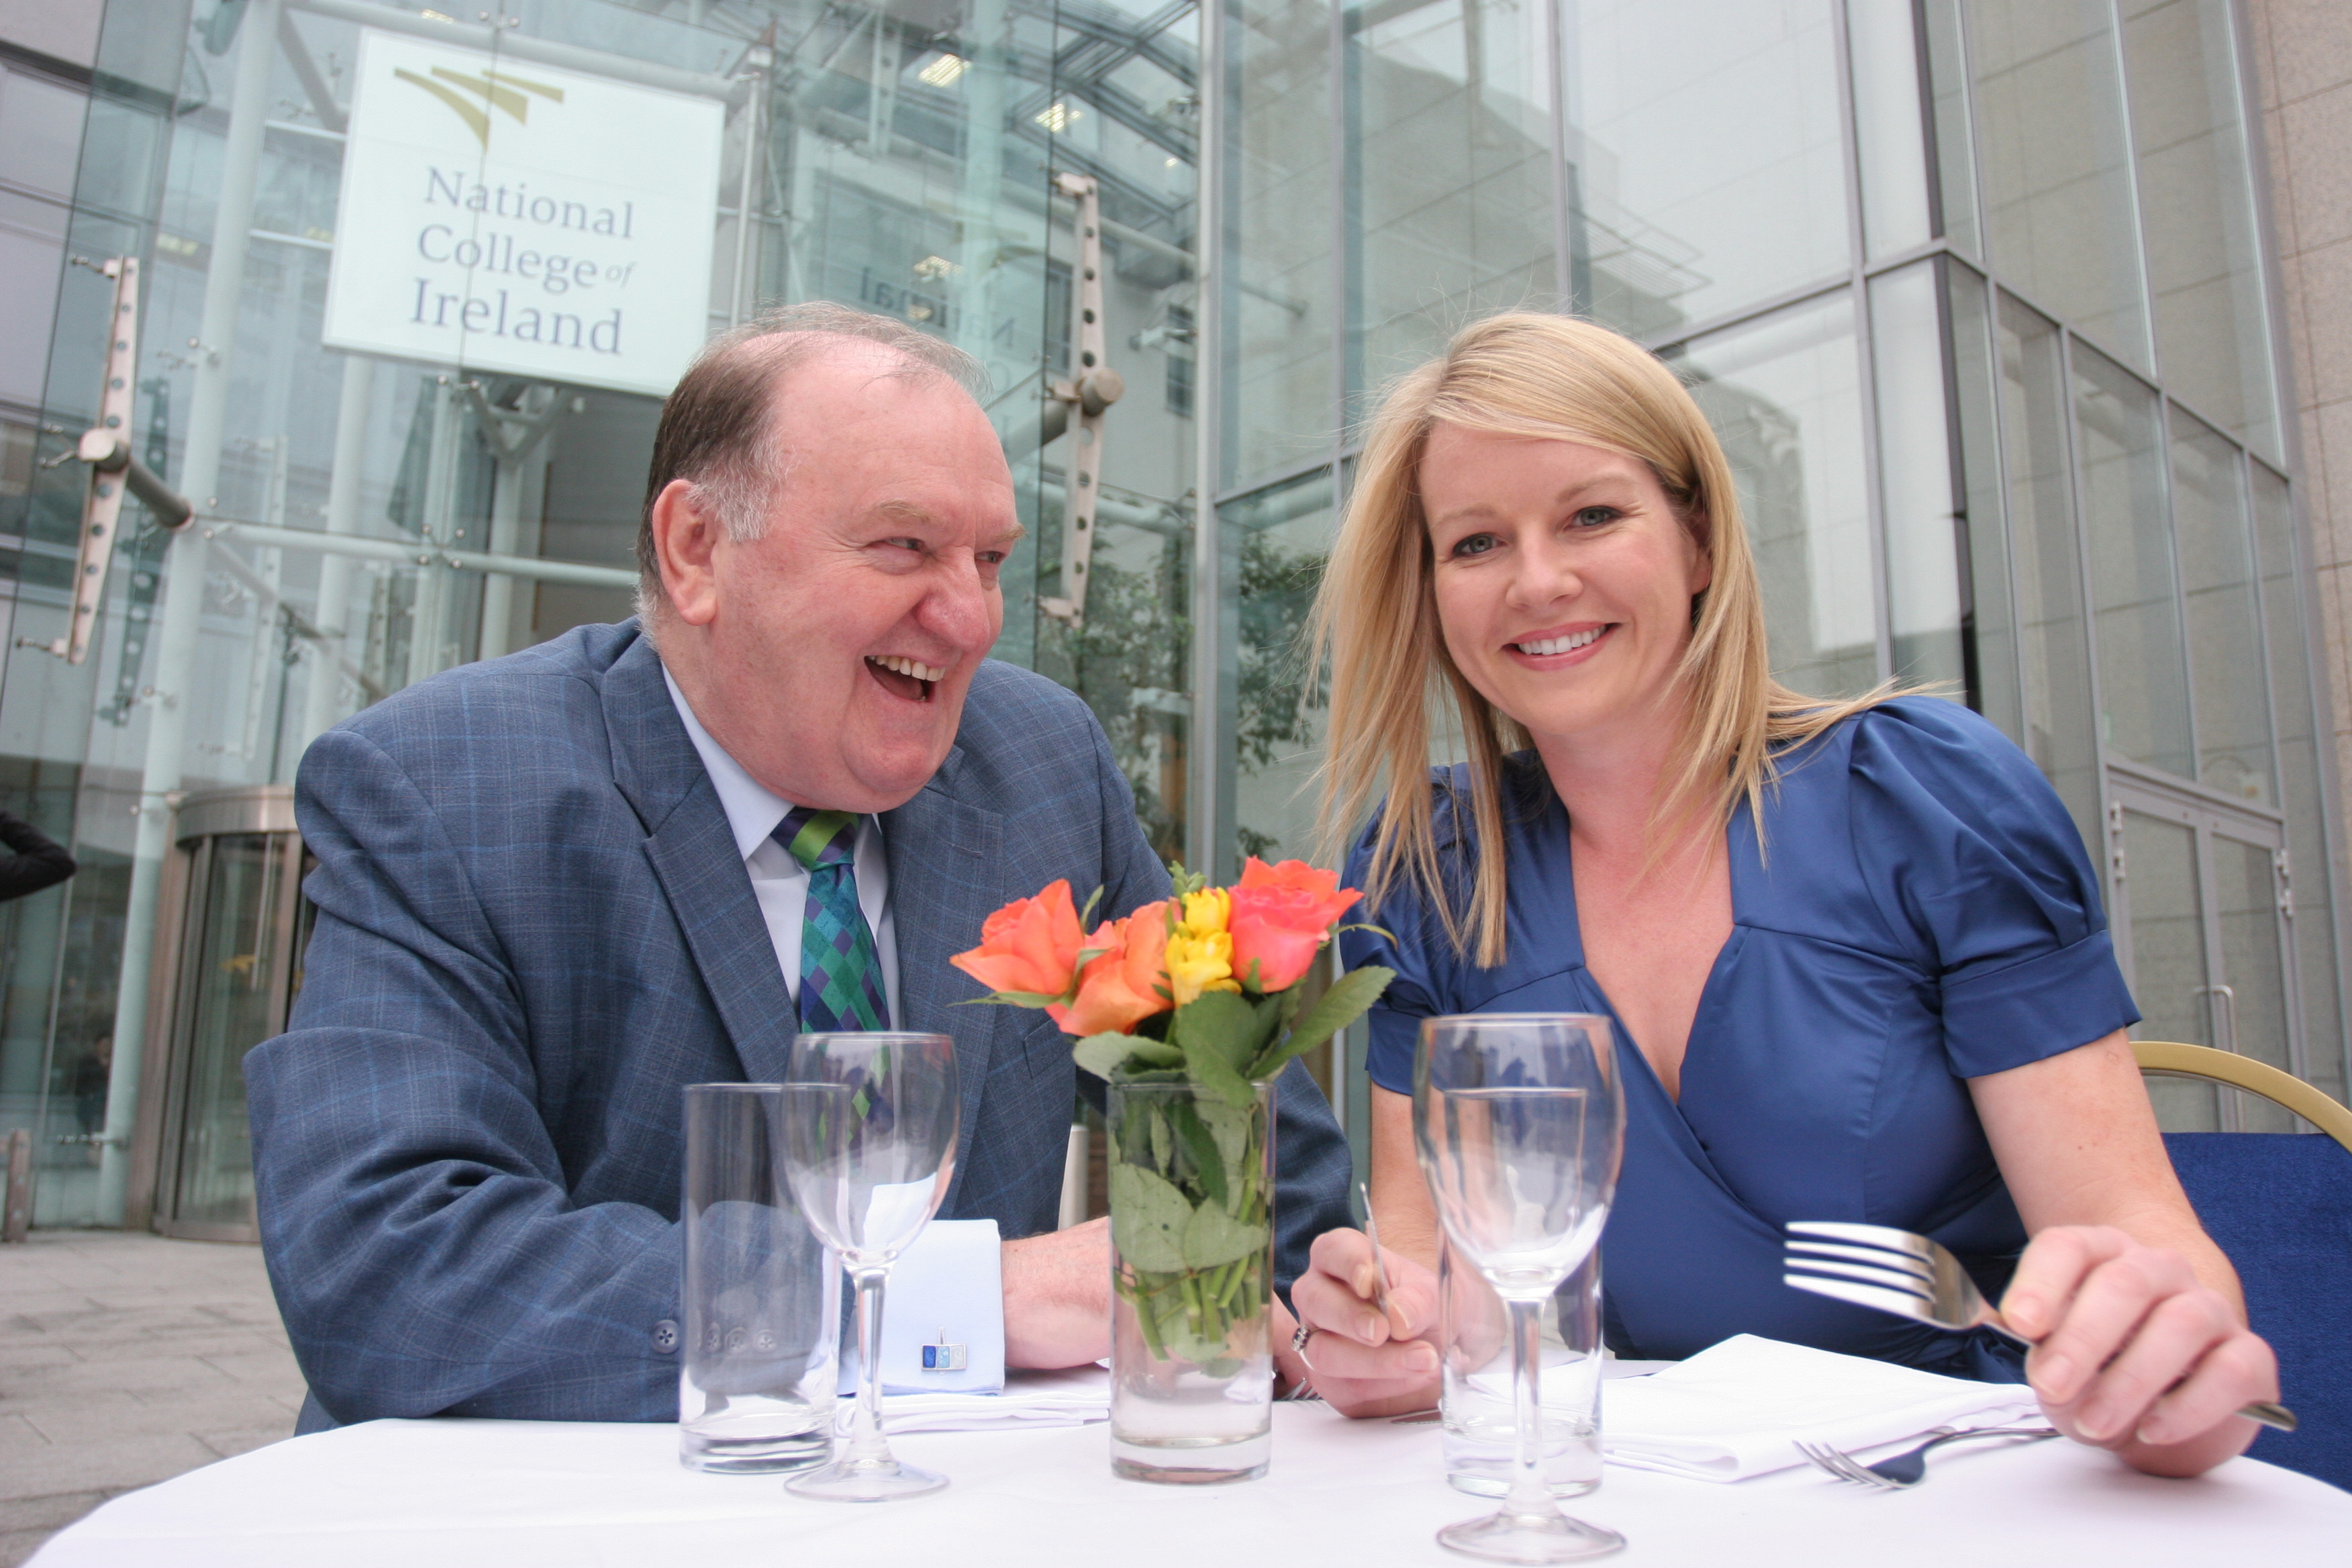 George Hook with Claire Byrne at National College of Ireland